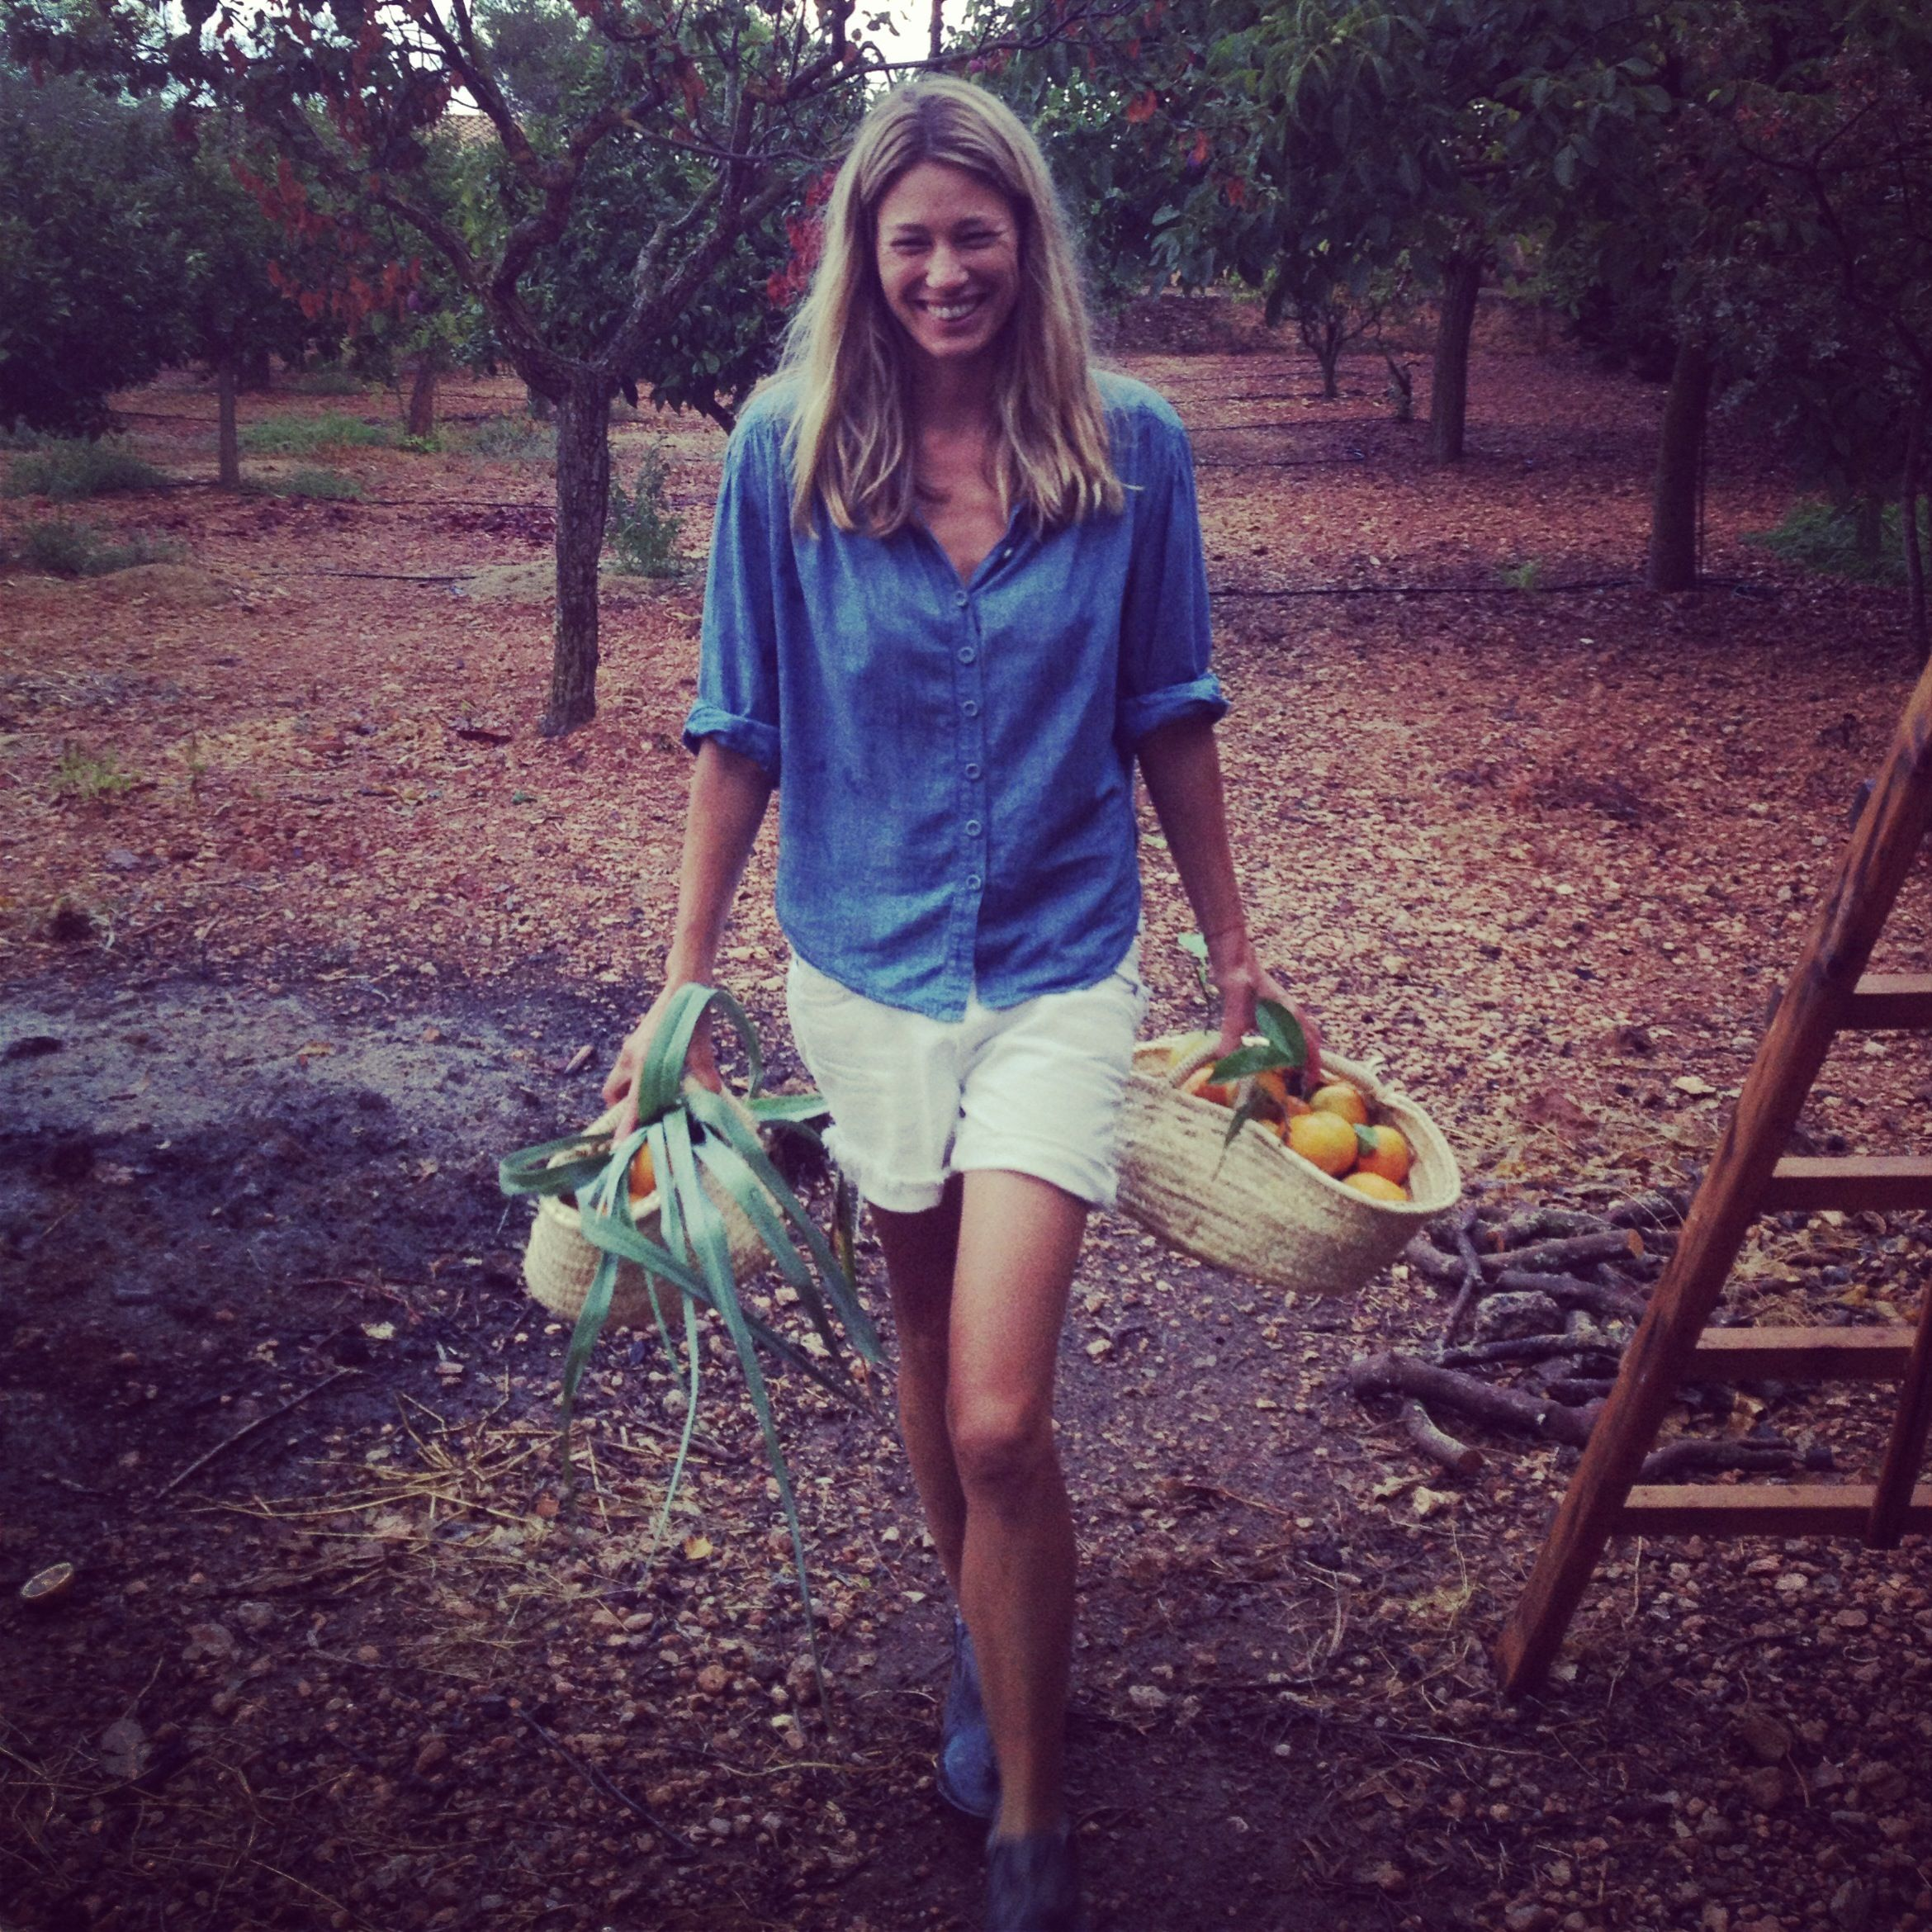 Www Stonefoxbride Com I Want To Work On A Farm This Summer Woofing Style Photoshoot Inspiration Clothes